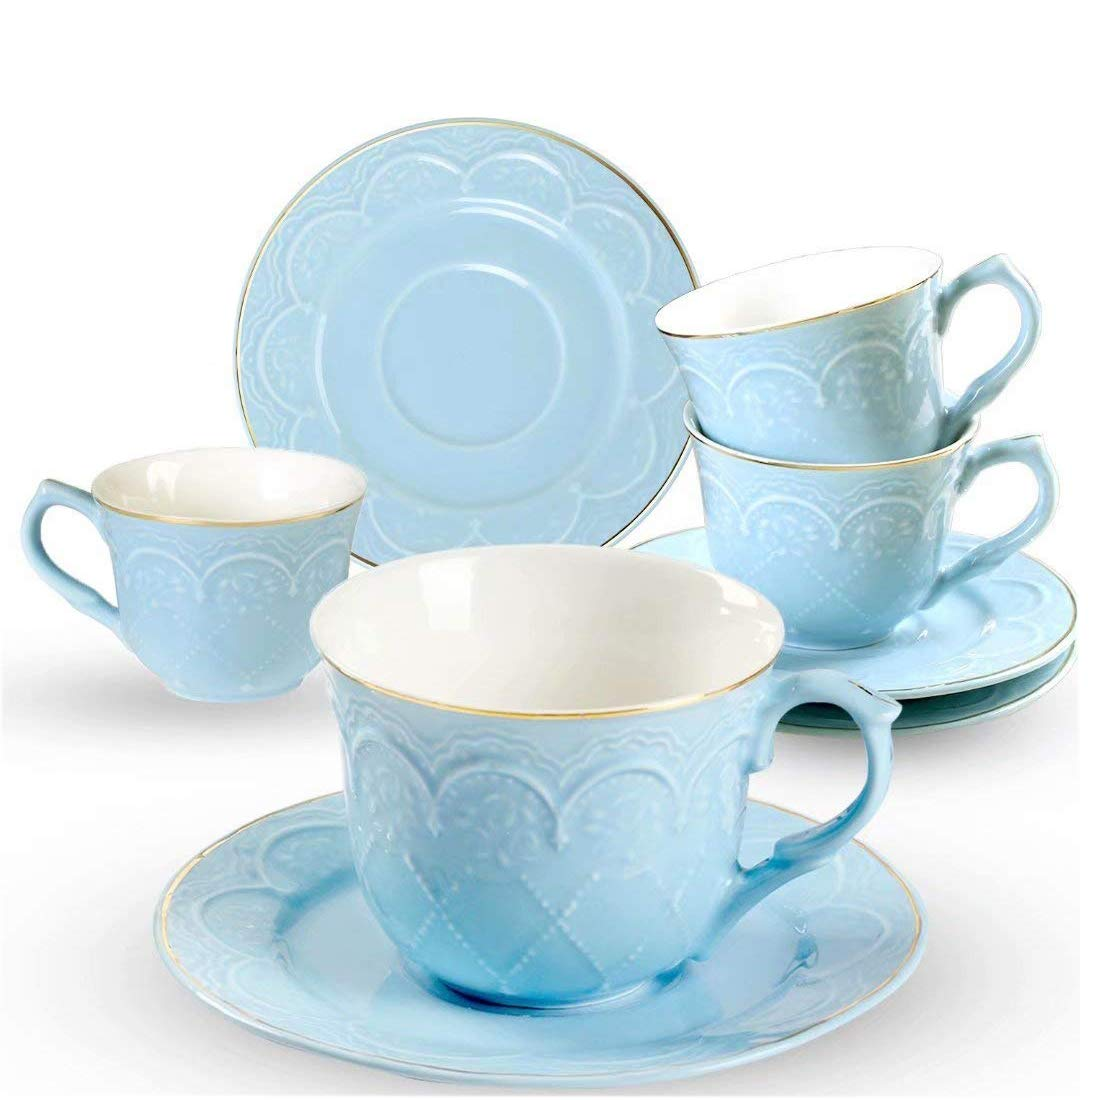 Porcelain Coffee Cups and Saucers Set- 7 OZ Embossed Flower Coffee Cups Set of 4-Blue Tea Cup Sets with Golden Edge Coffee Cups for Mocha Cappuccino